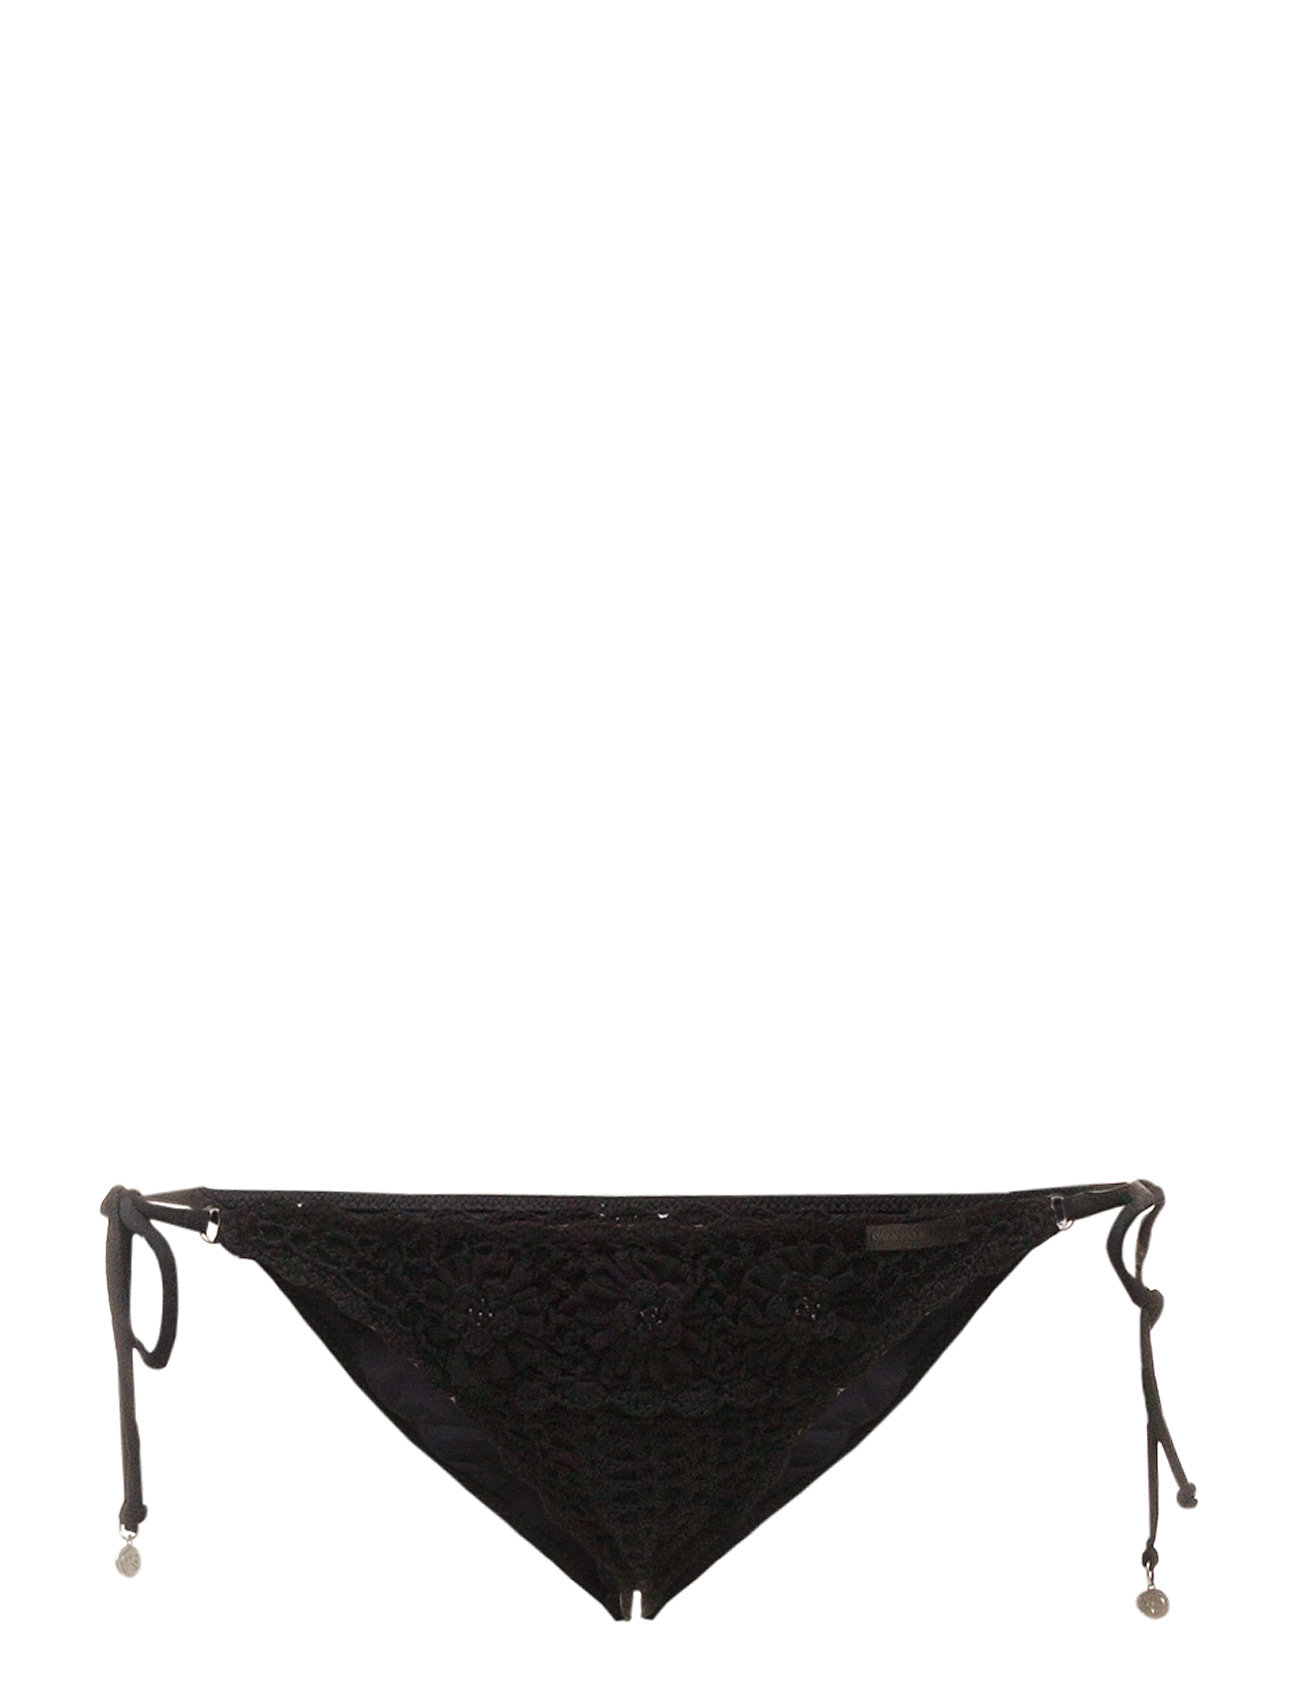 Panos Emporio KANDIA BOTTOM - BLACK